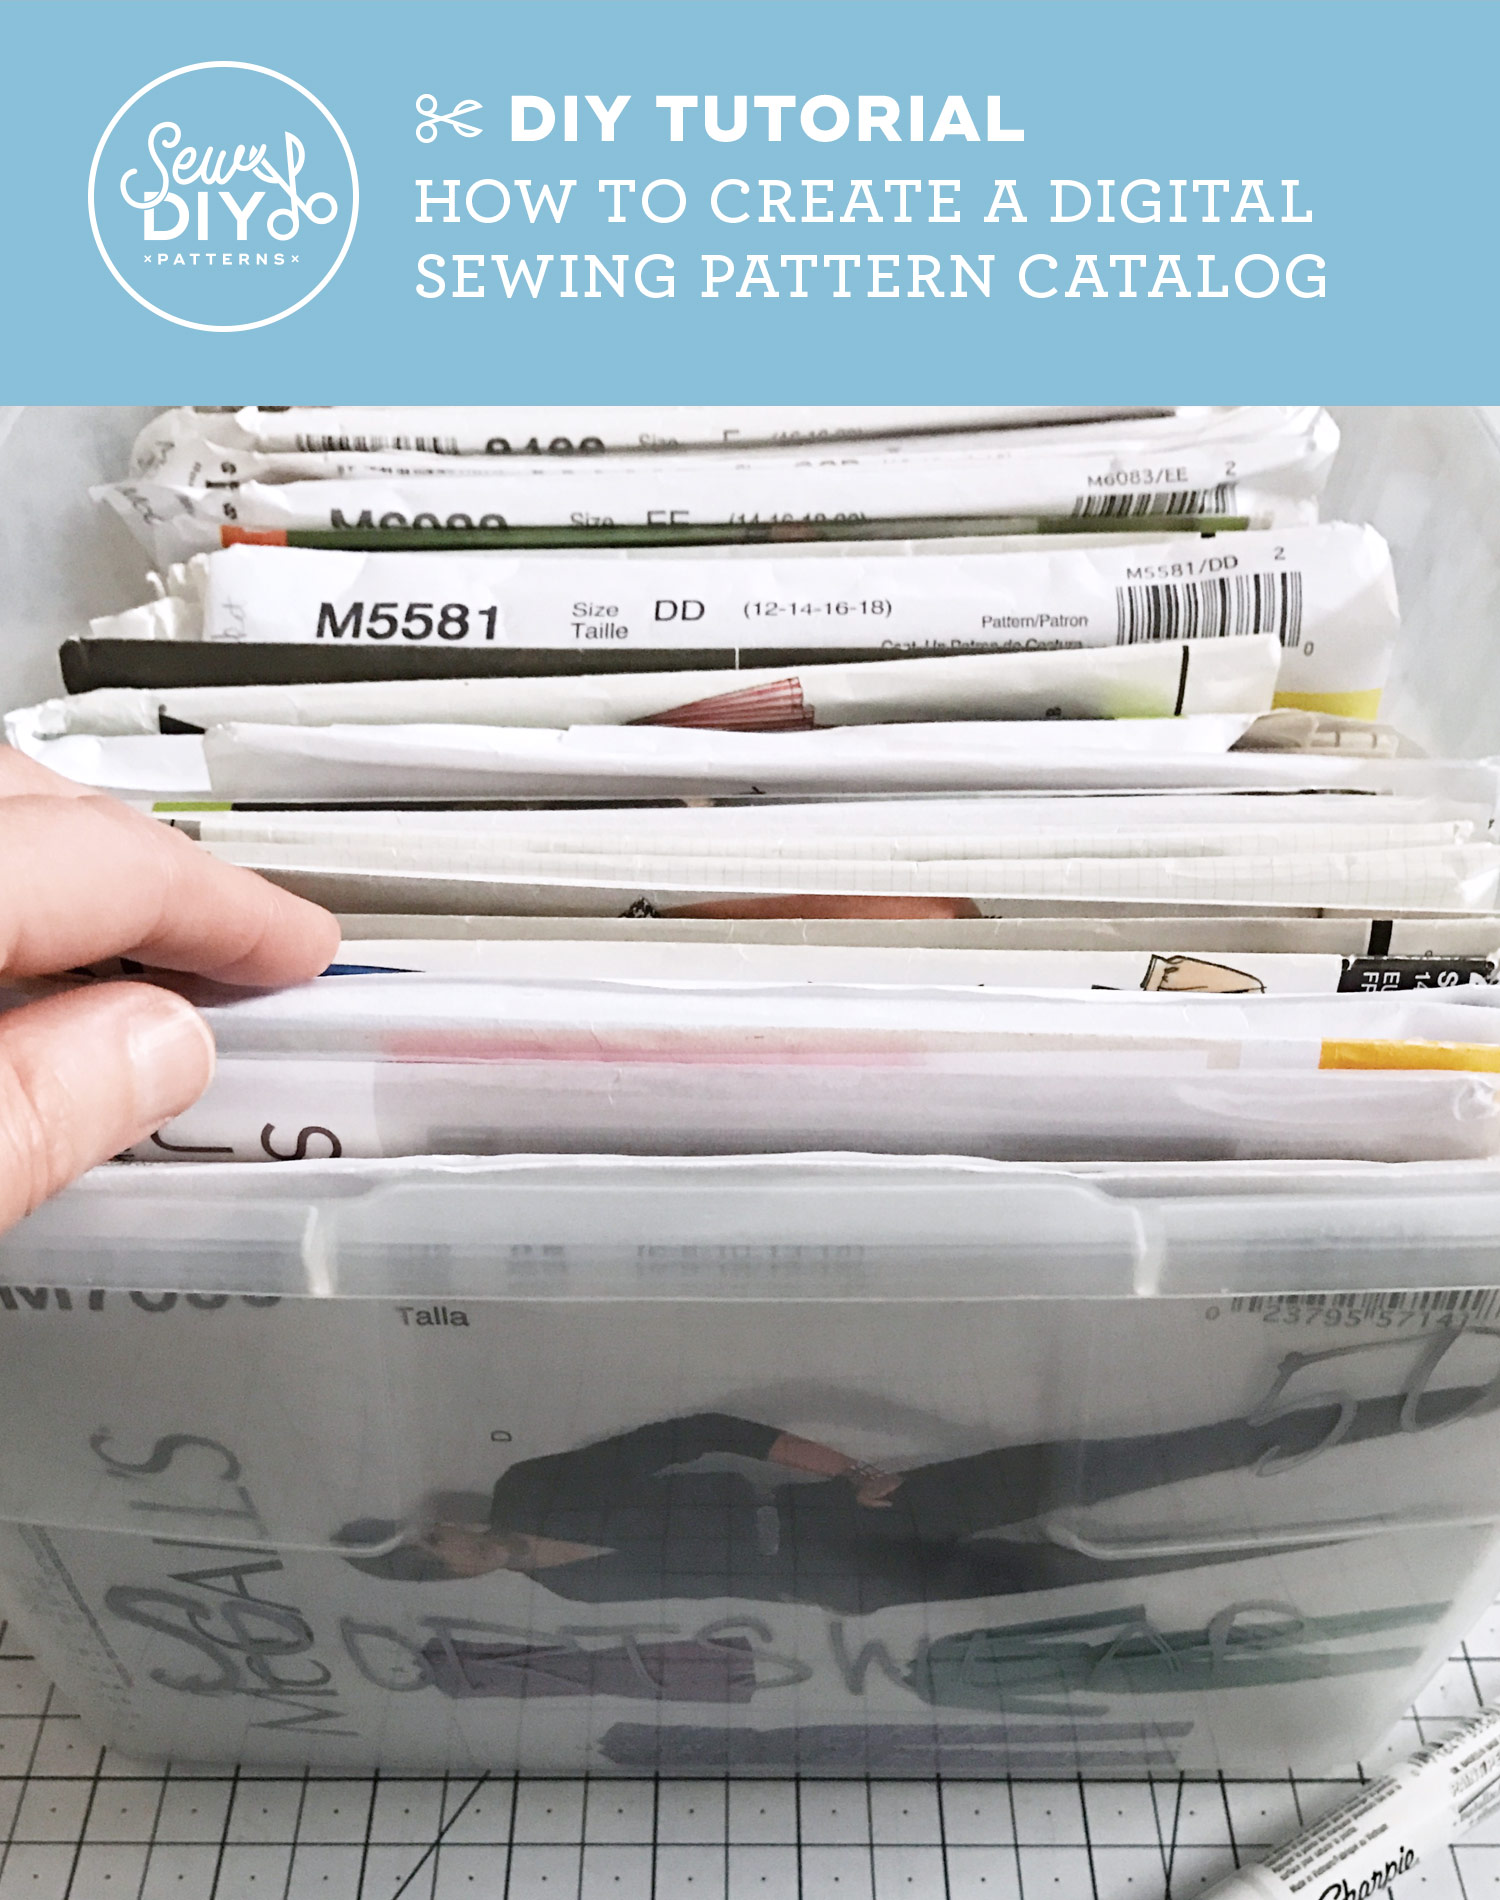 Learn the simple steps to create a digital pattern catalog using Evernote